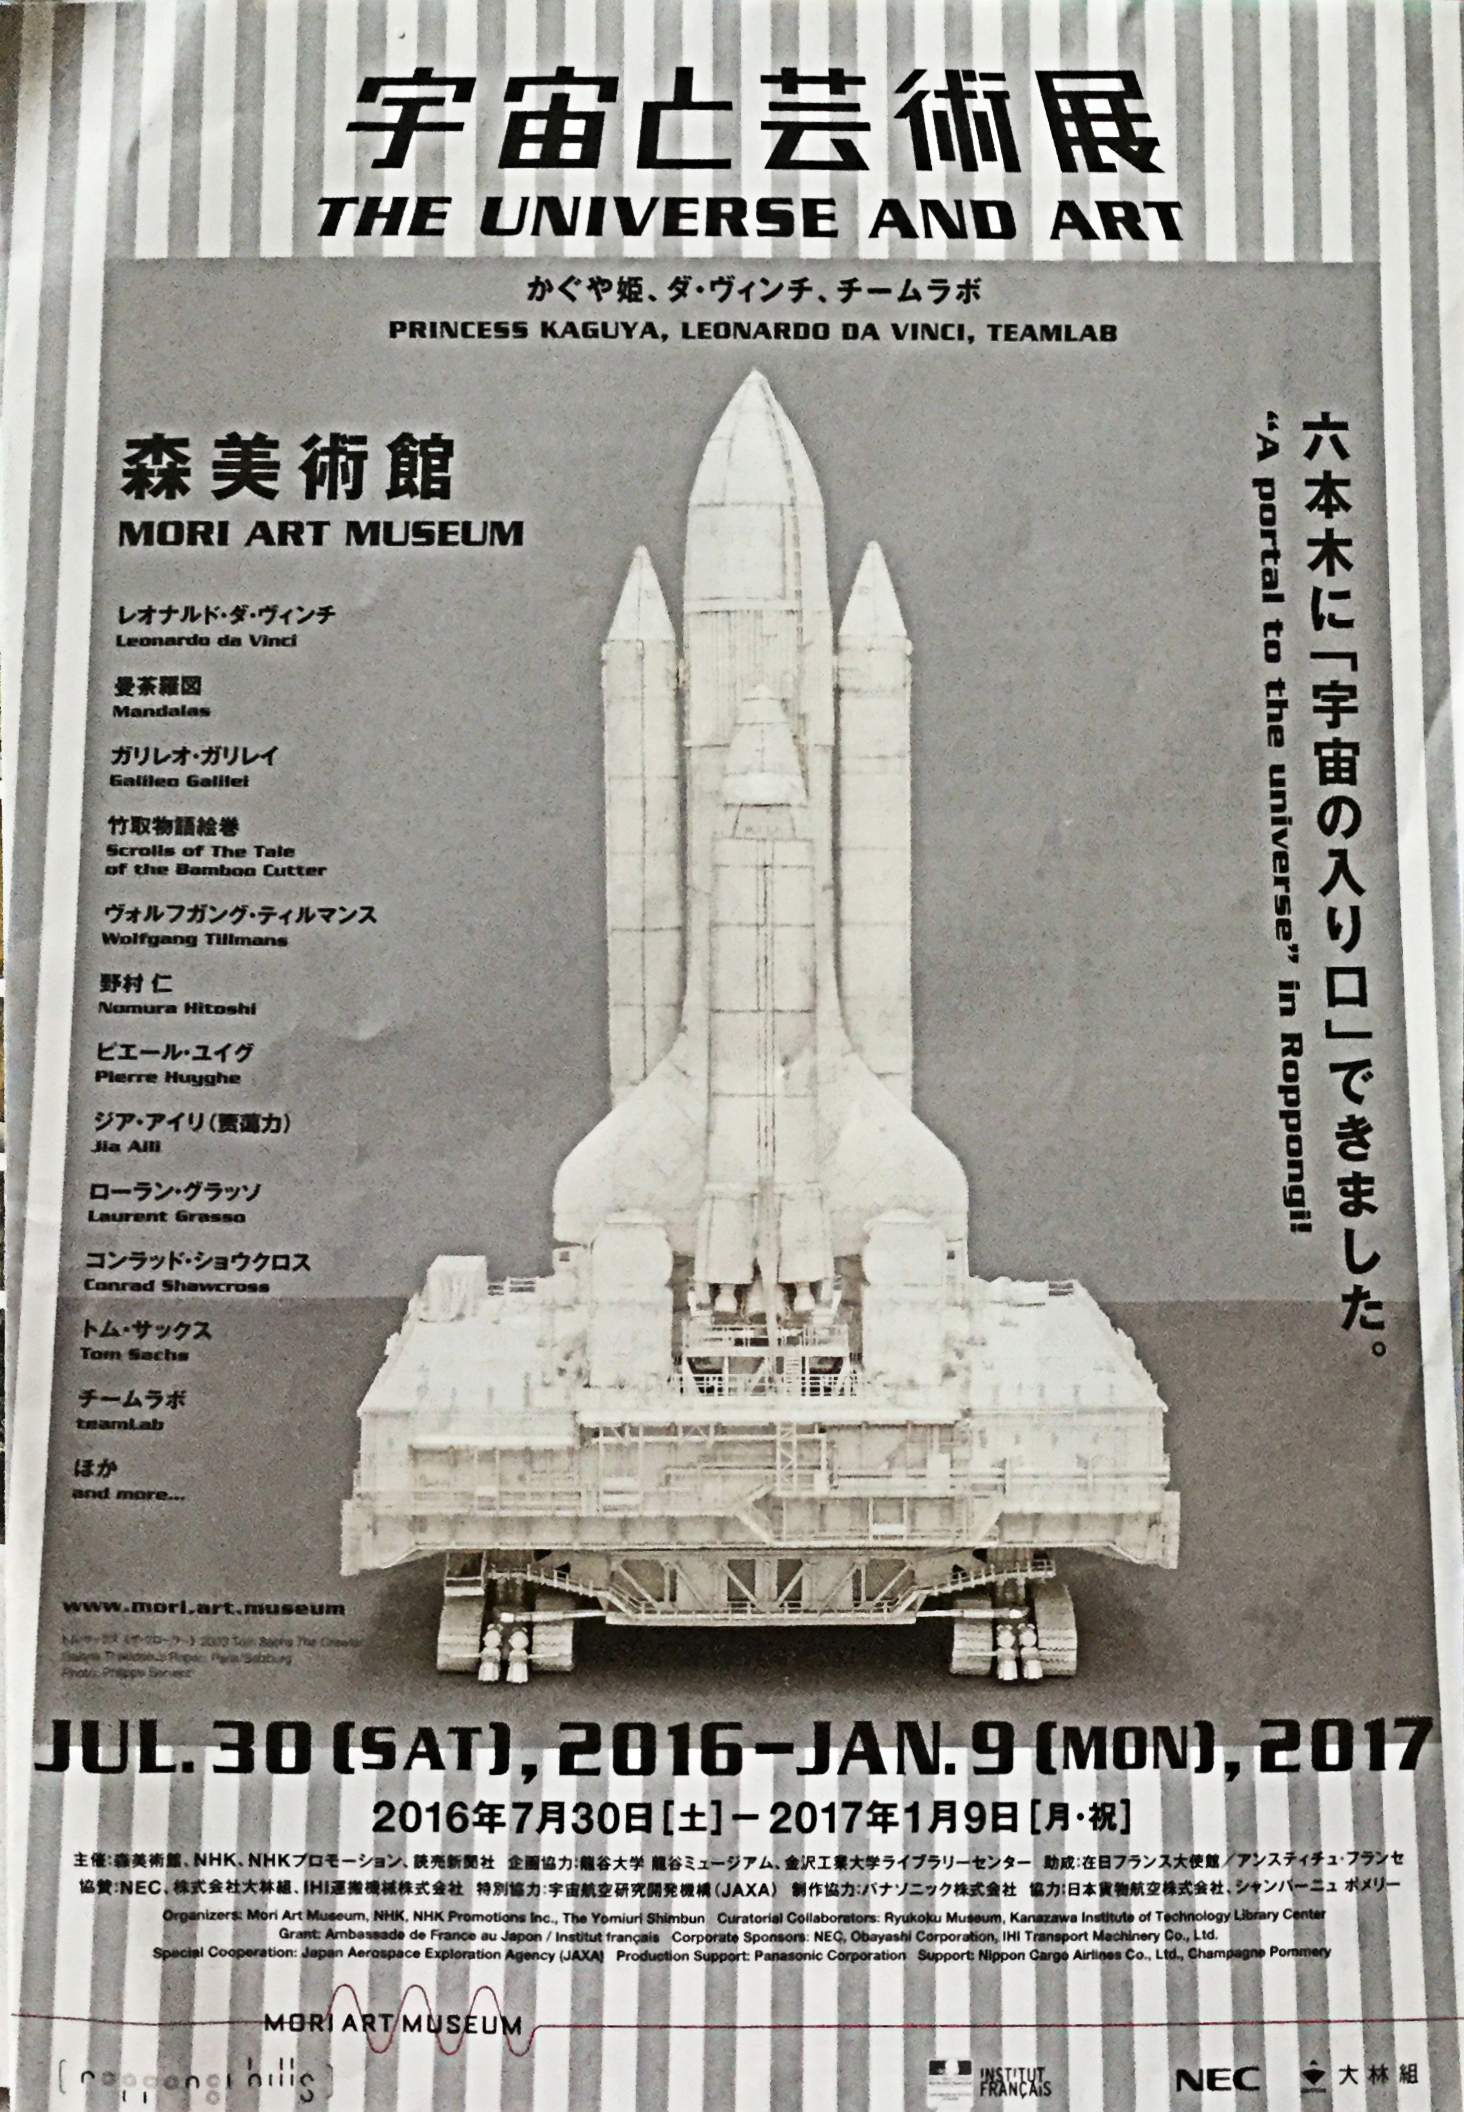 Grey and white stripes narrowing into the distance form the background to this poster featuring a white, scale model of the failed Challenger spacecraft.